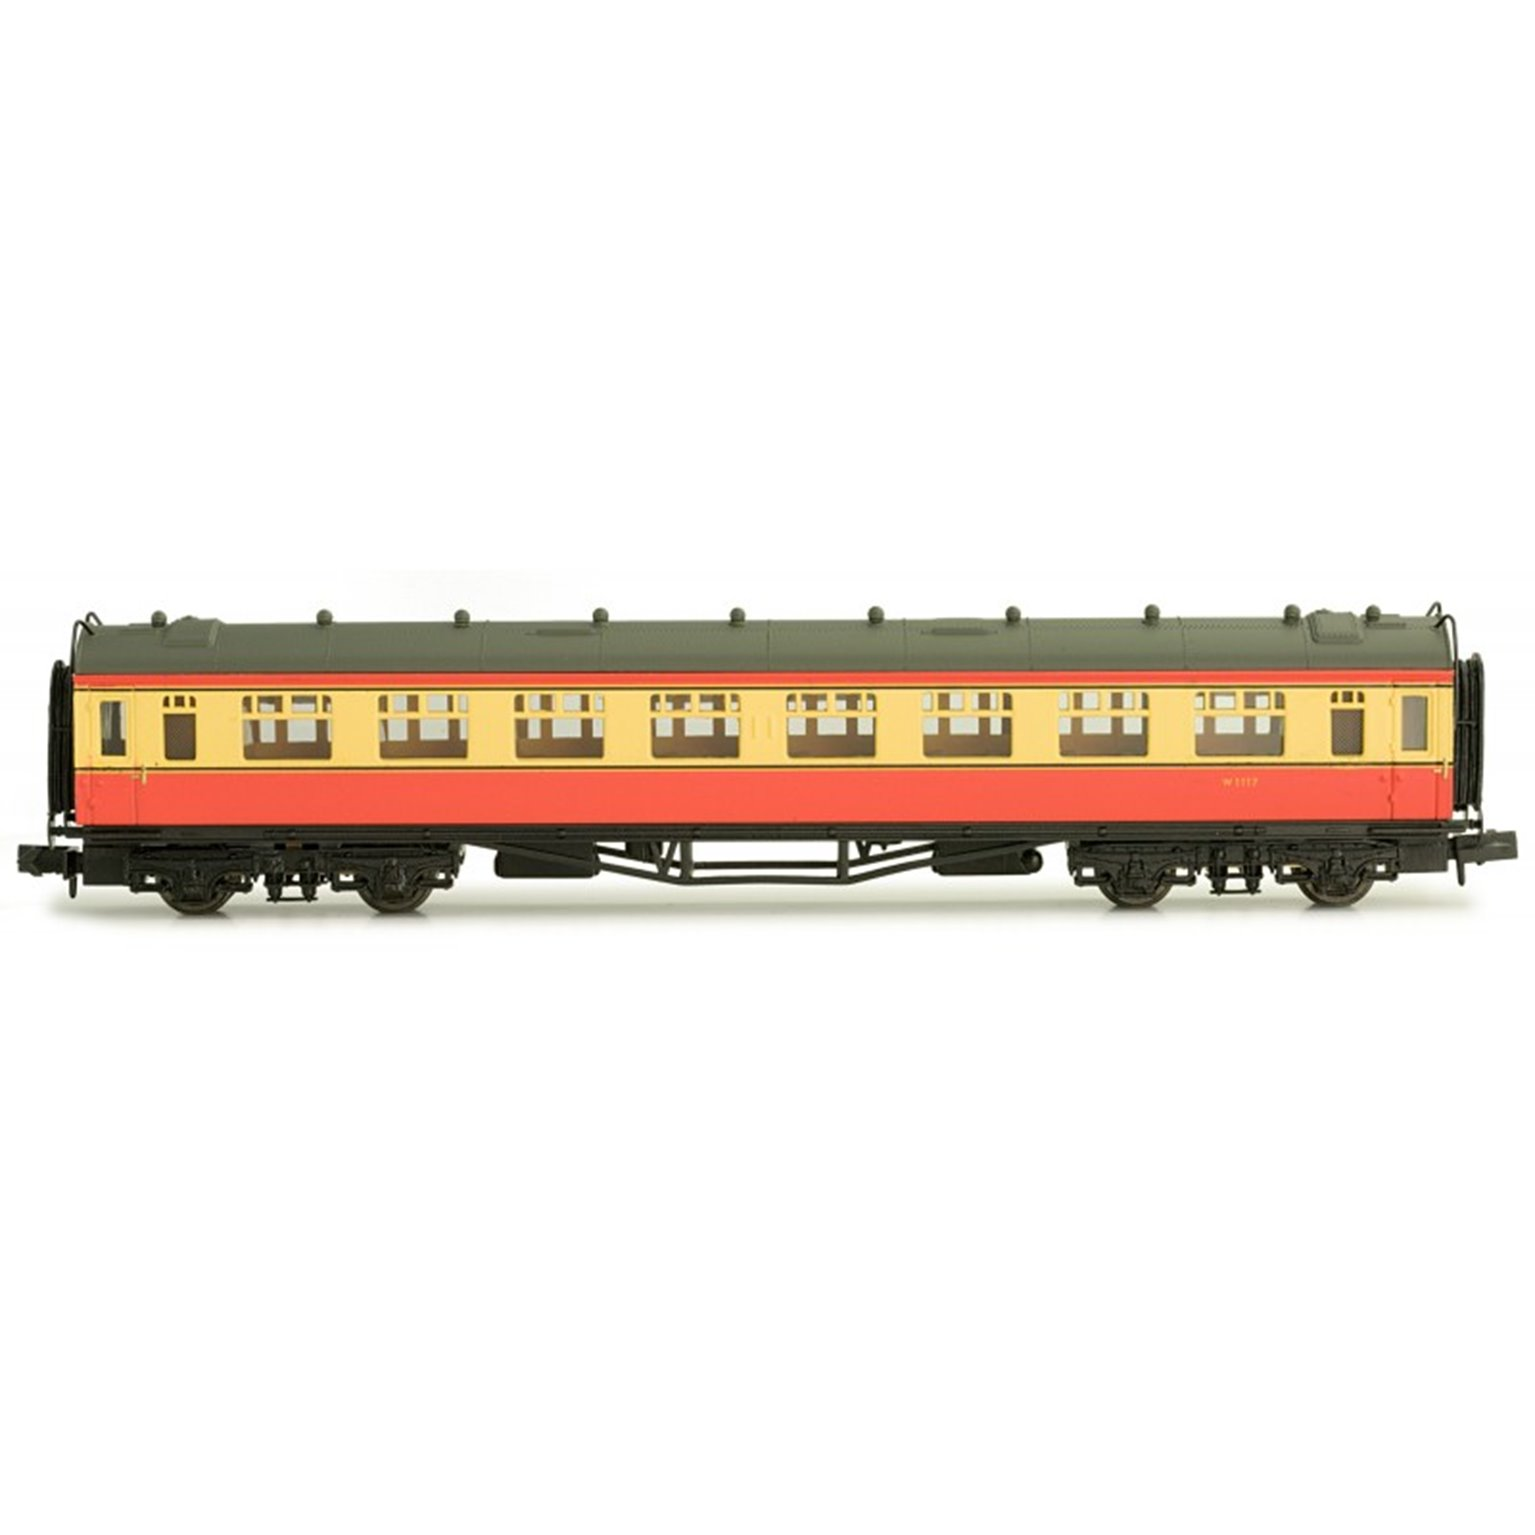 Collett second class W1117 in BR crimson and cream